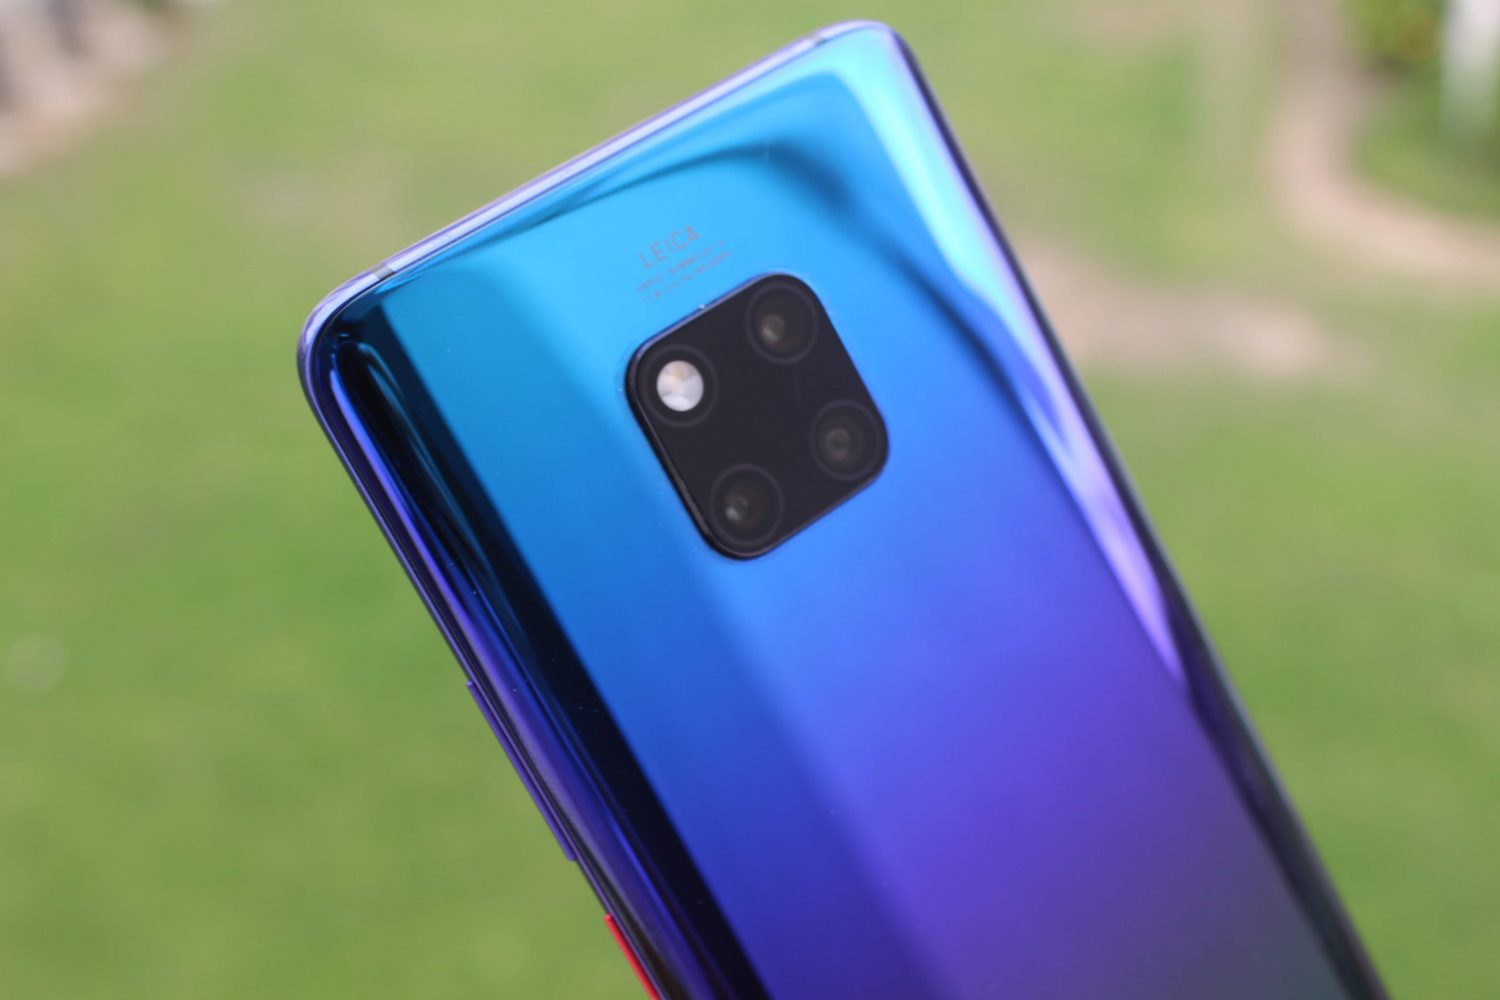 Revisiting the Huawei Mate 20 Pro: Is it still up to the mark?